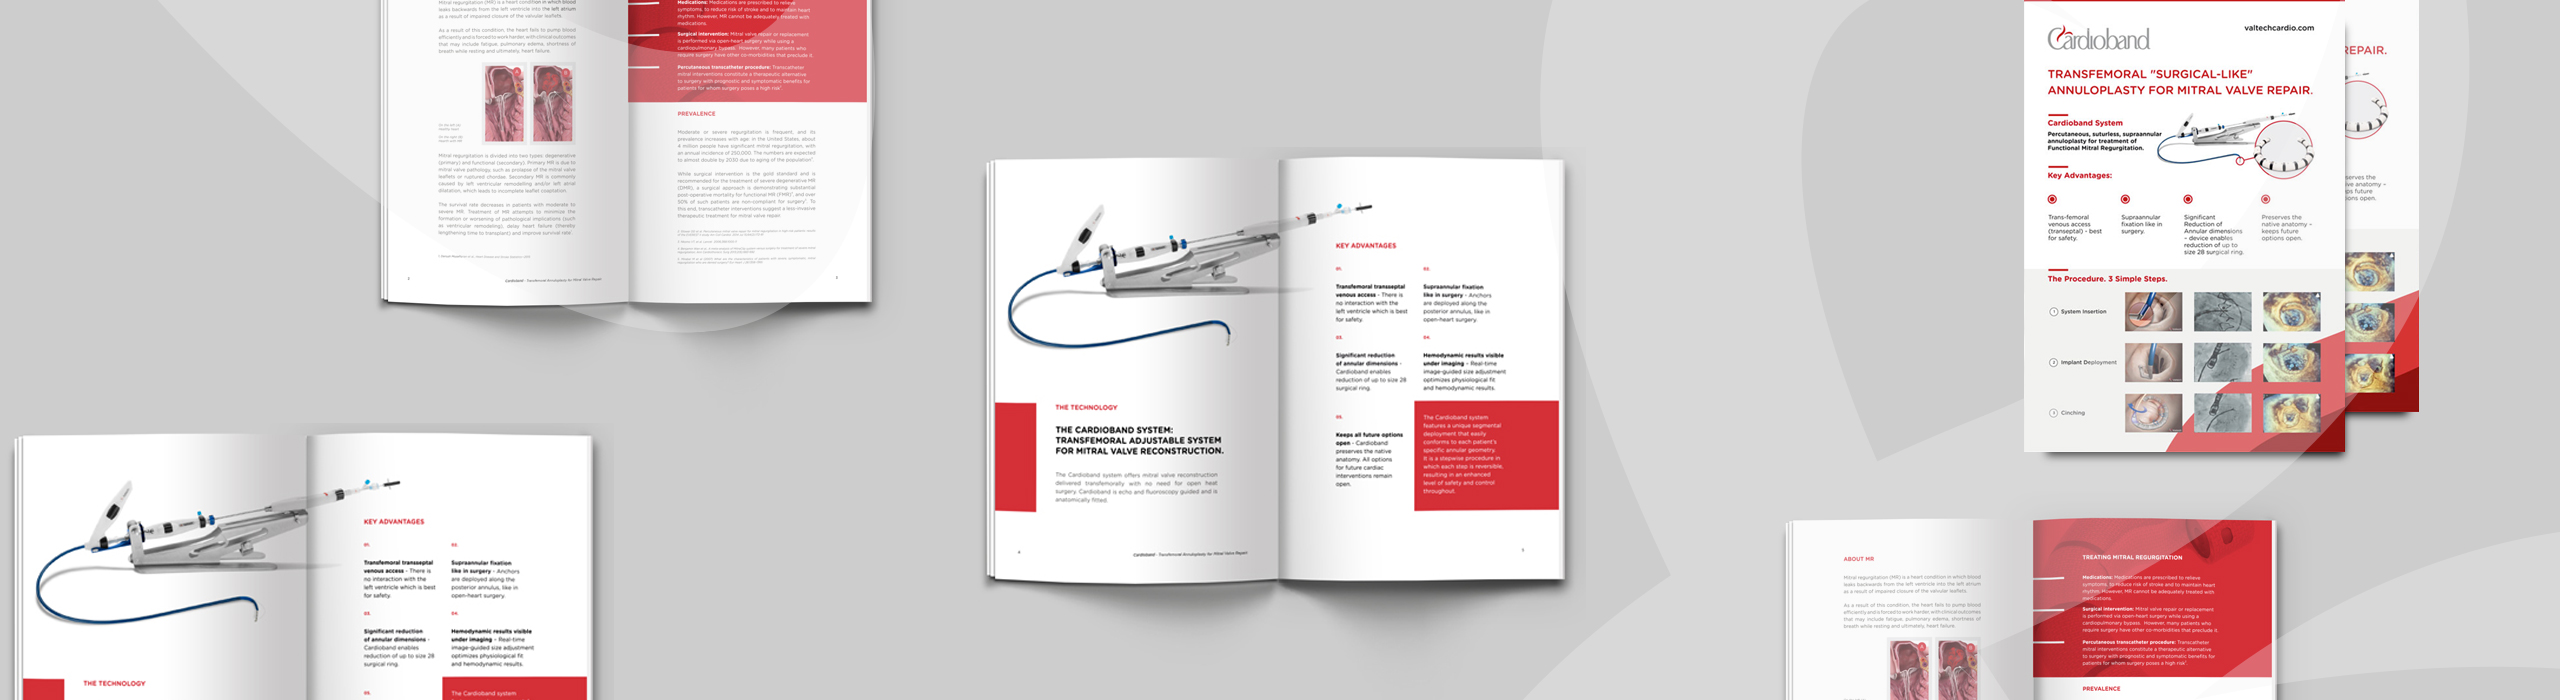 Valtech - natie-valtech-brochure-design - Natie Branding Agency